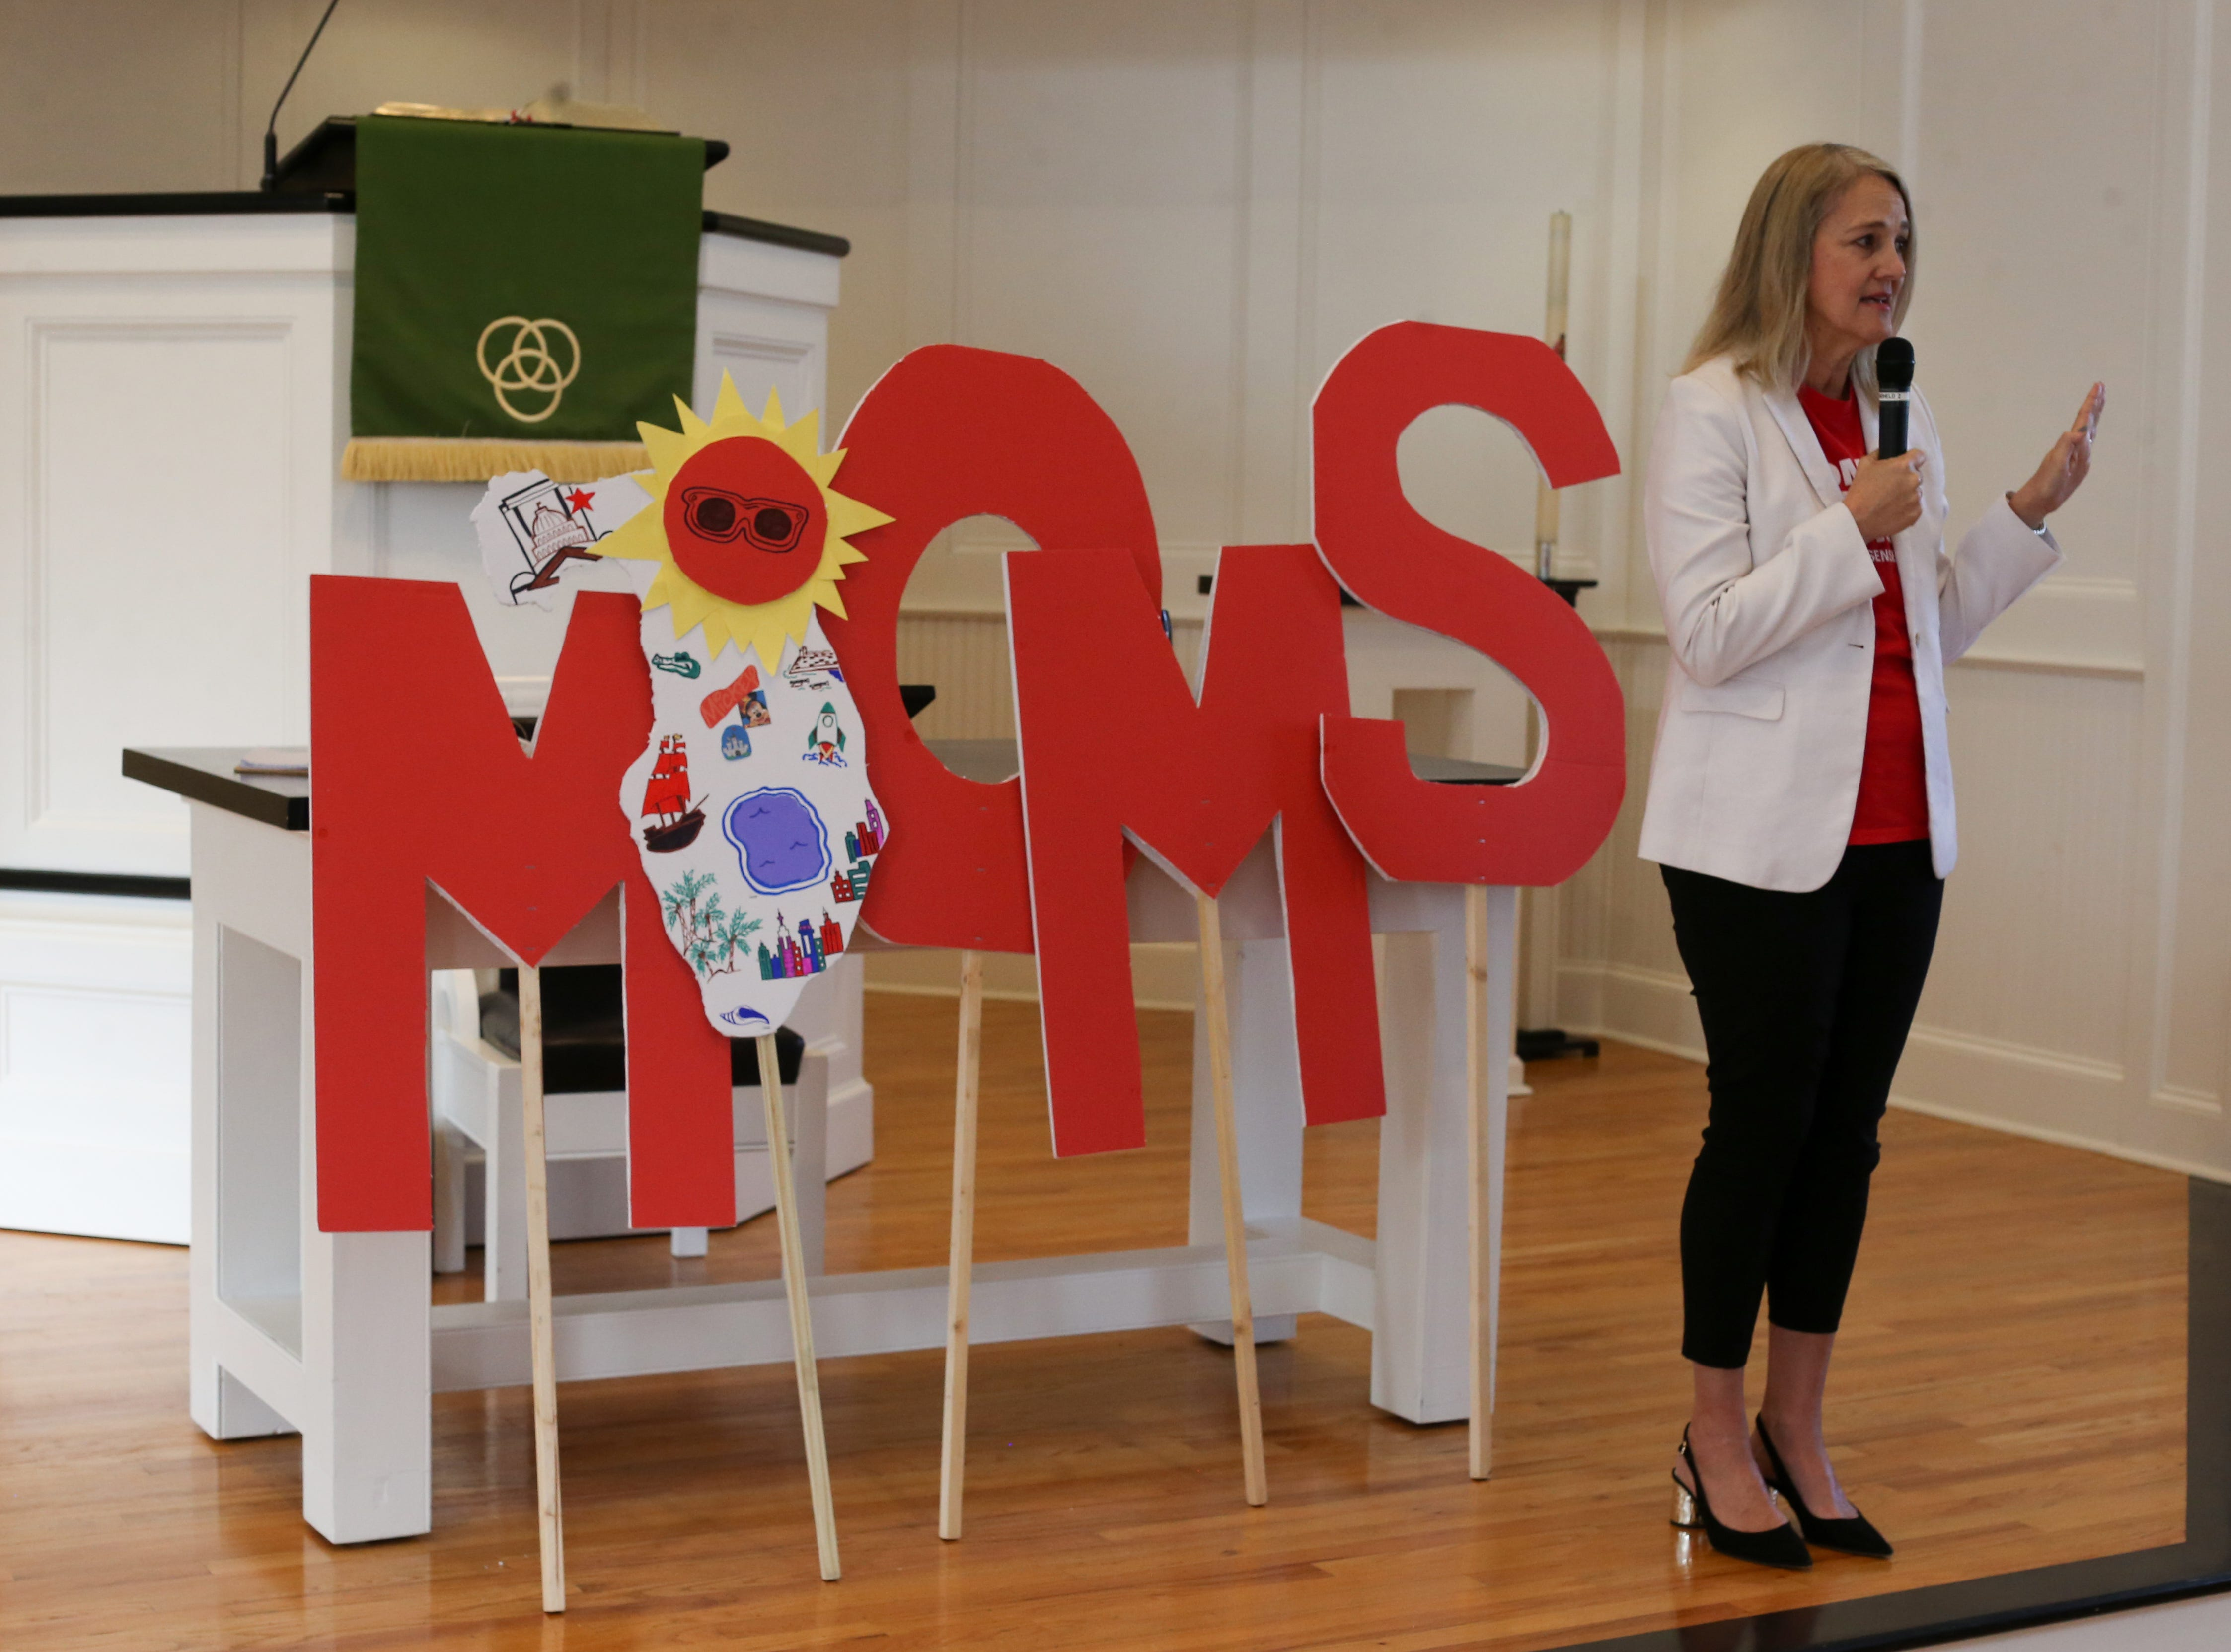 Debbie Weir, a member of Every Town for Gun Safety and Moms Demand Action, addresses over 500 members of Moms Demand Action in First Presbyterian Church in Tallahassee before they departed to the Capitol to meet with lawmakers to lobby for stricter gun laws Wednesday, Feb. 6, 2019.